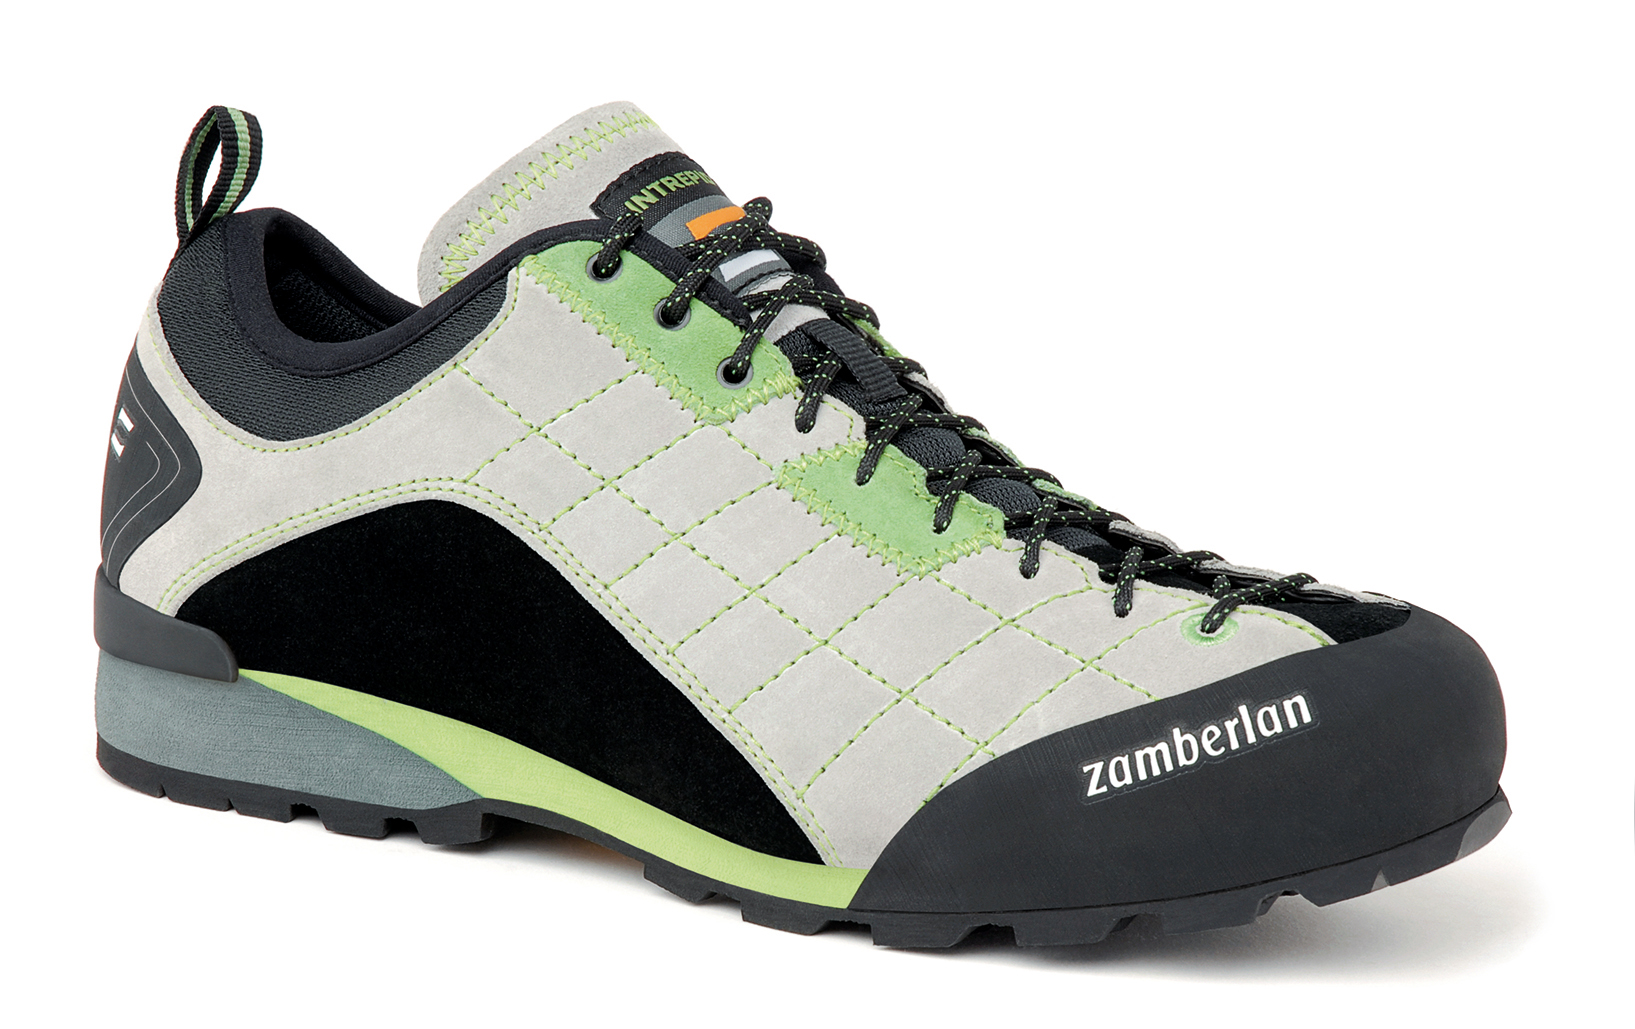 125 INTREPID RR   -   Alpine approach  Shoes   -   Ciment